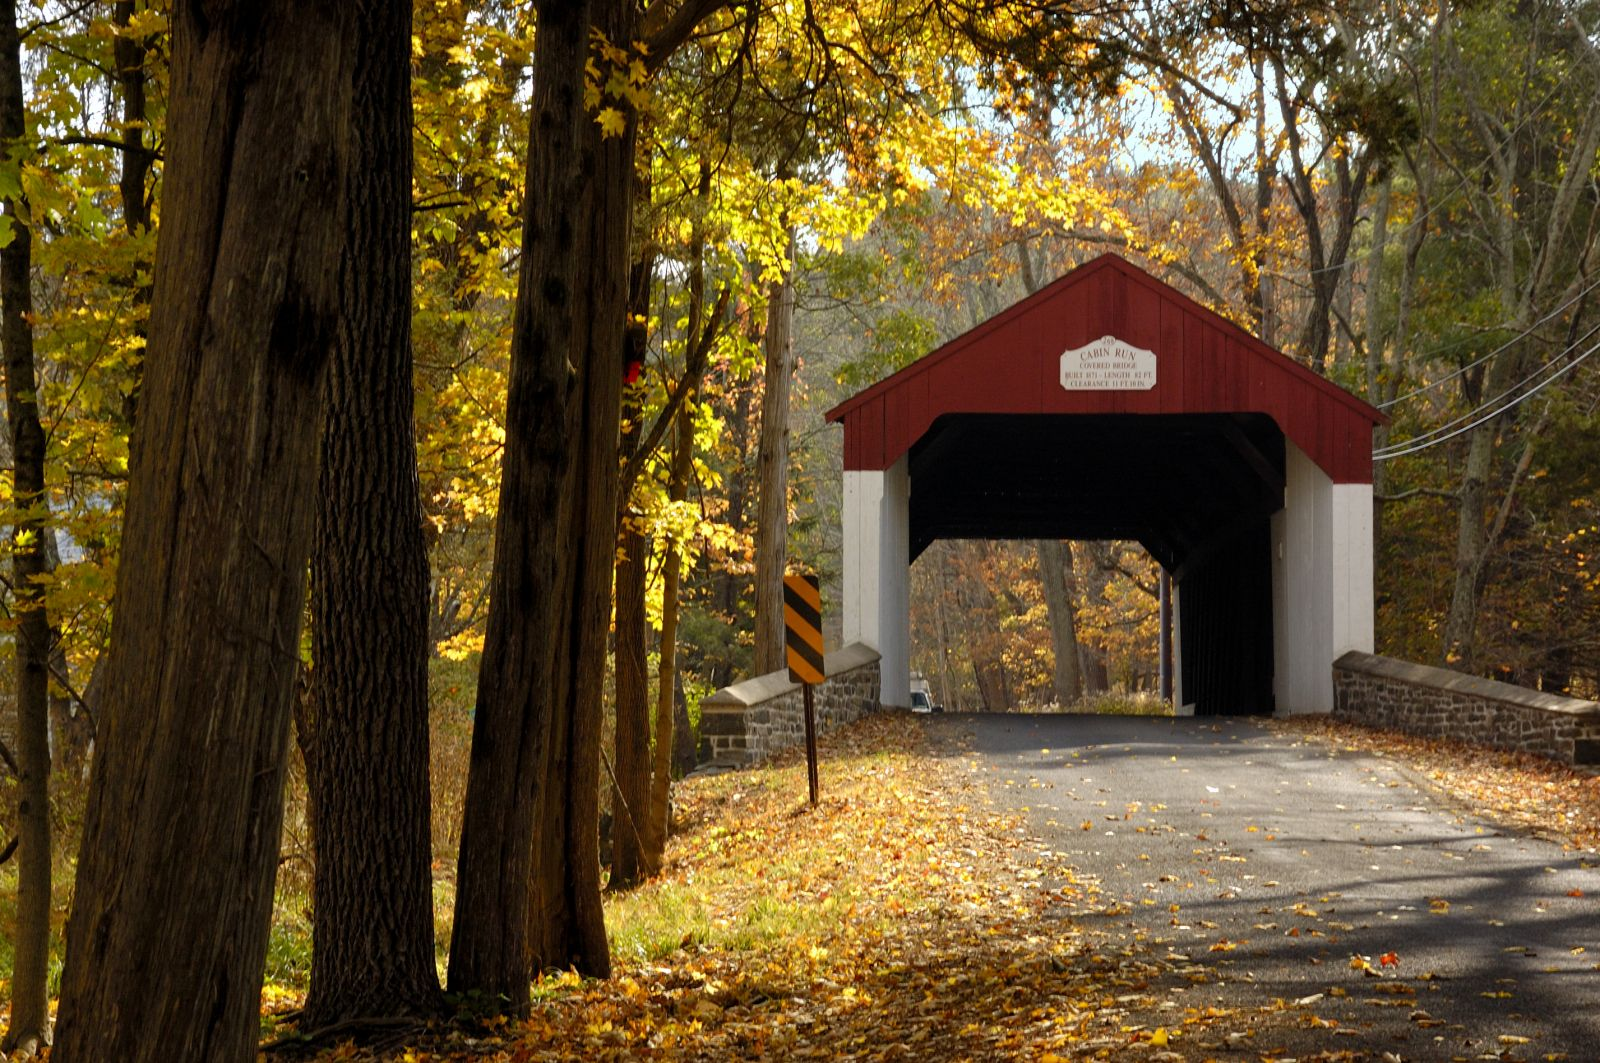 Top 10 Pictureperfect Spots For Fall Engagement Photos In Bucks County: Wedding Venues Near Doylestown Pennsylvania At Websimilar.org